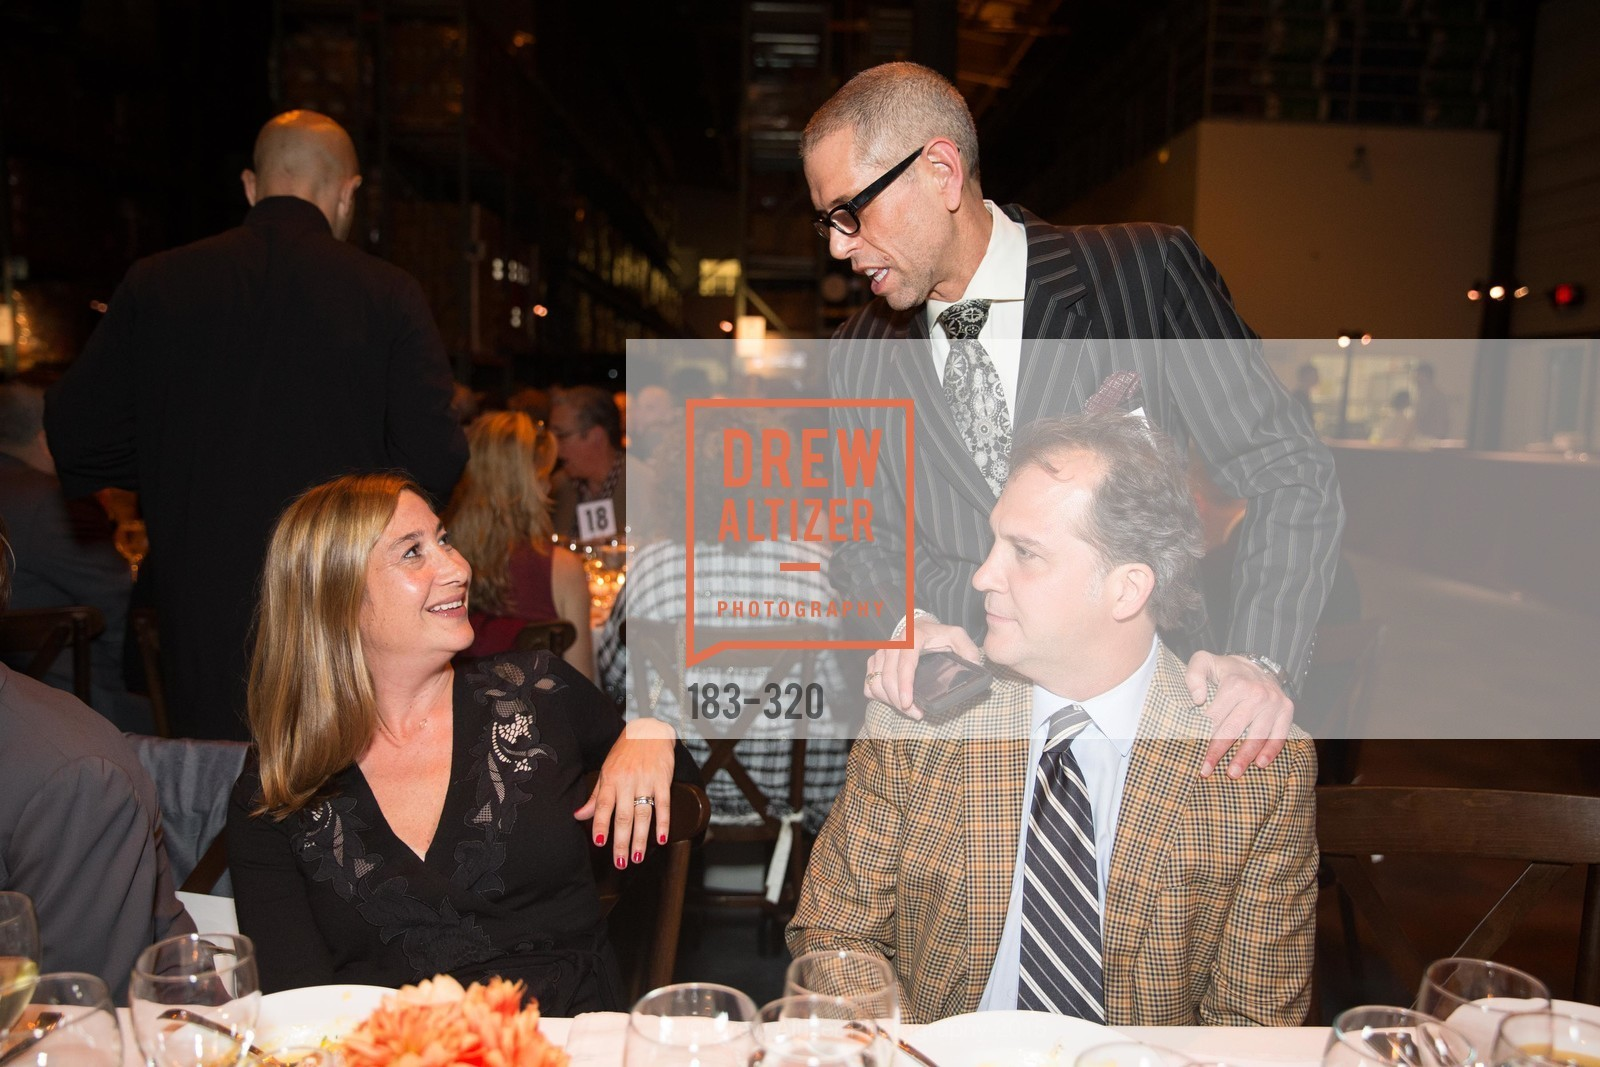 Michele Rosen, Andrew Freeman, Tony Marcell, SF - Marin Food Bank Presents ONE BIG TABLE, SF- Marin Food Bank. 900 Pennsylvania Ave, September 26th, 2015,Drew Altizer, Drew Altizer Photography, full-service agency, private events, San Francisco photographer, photographer california